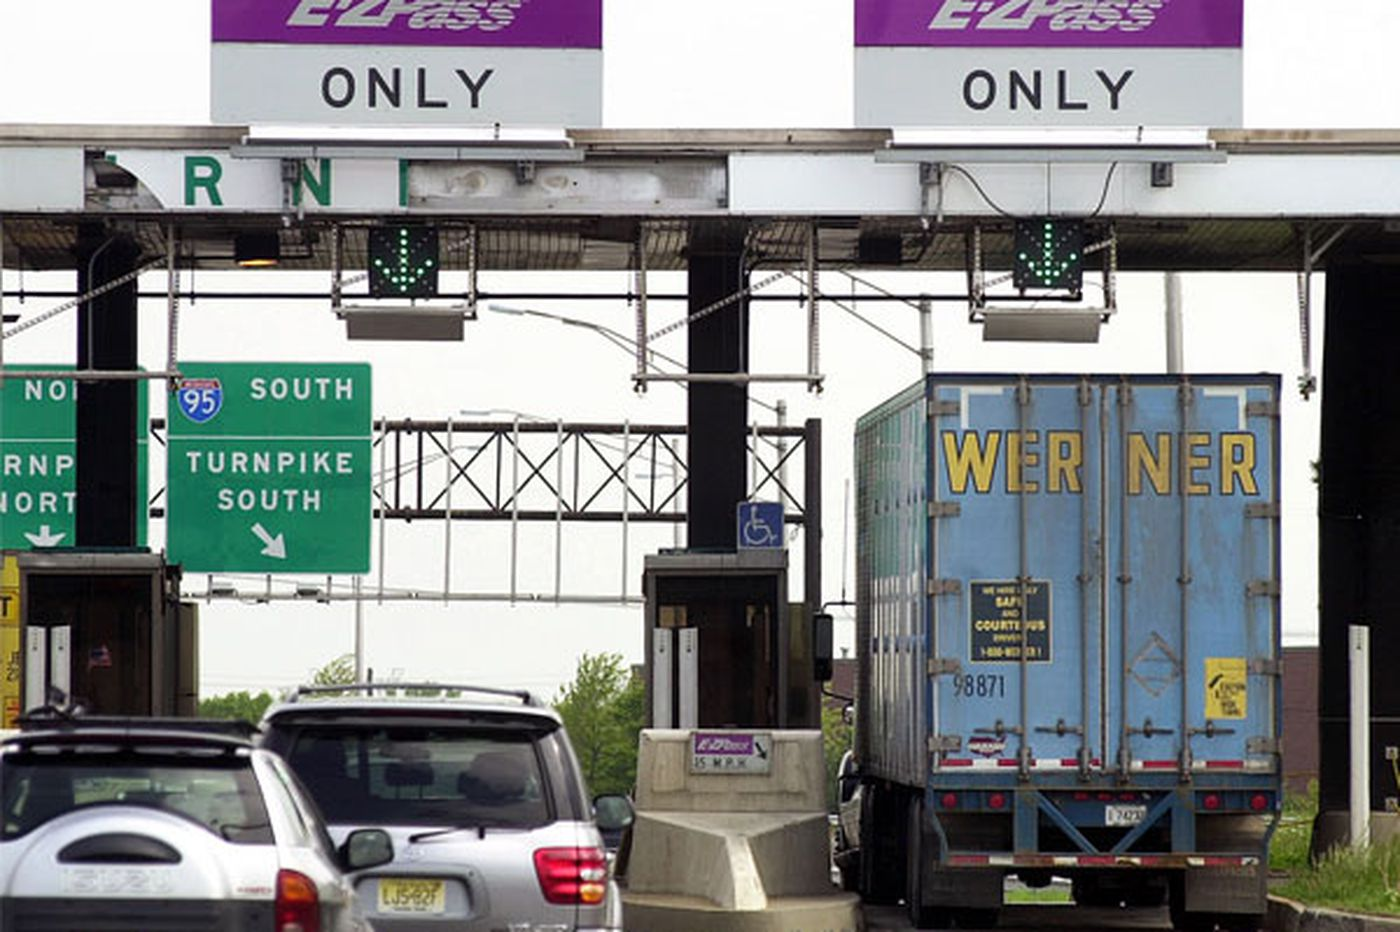 Cross-state cost on Pa. Turnpike in 2015: $46.05